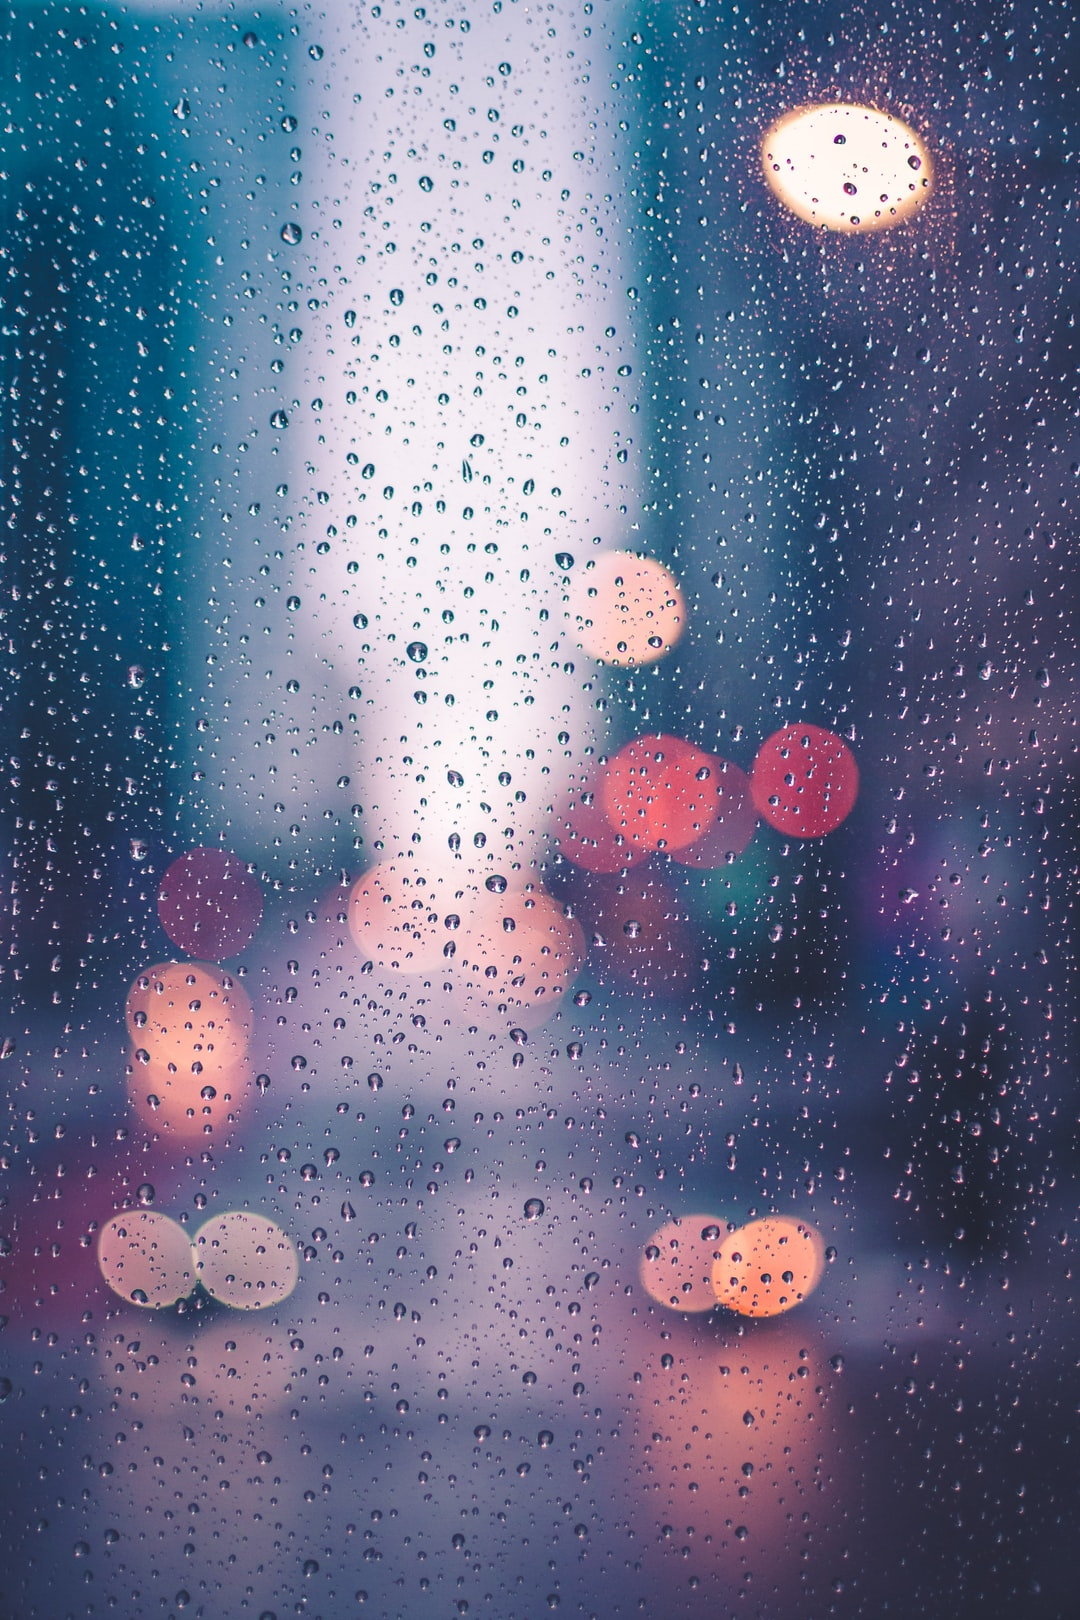 350+ Rain Pictures [HD] | Download Free Images & Stock ...